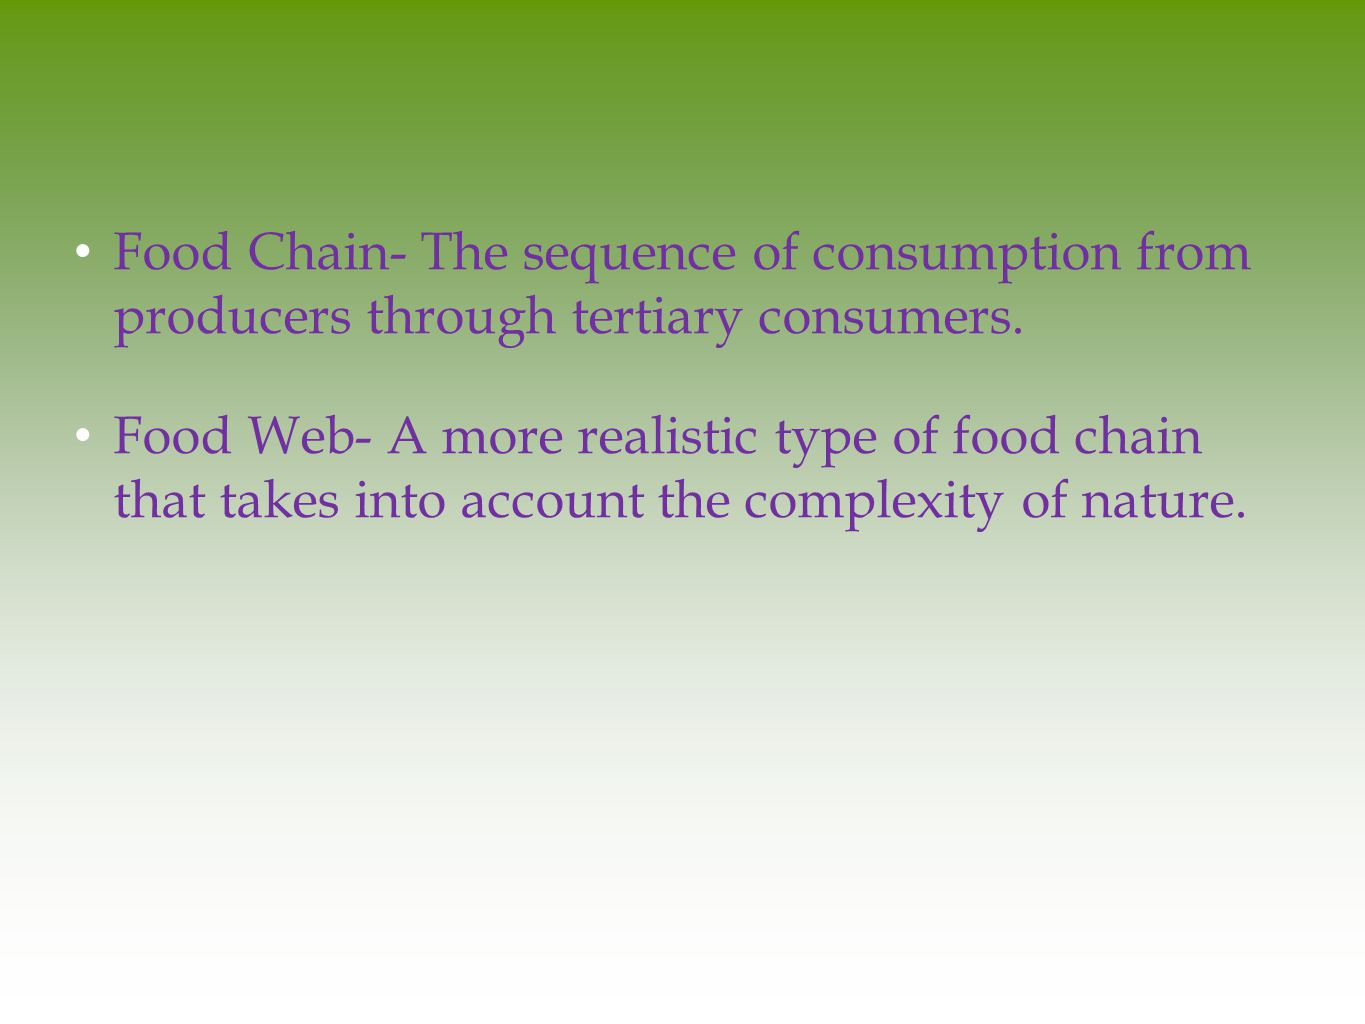 Food Chain- The sequence of consumption from producers through tertiary consumers.